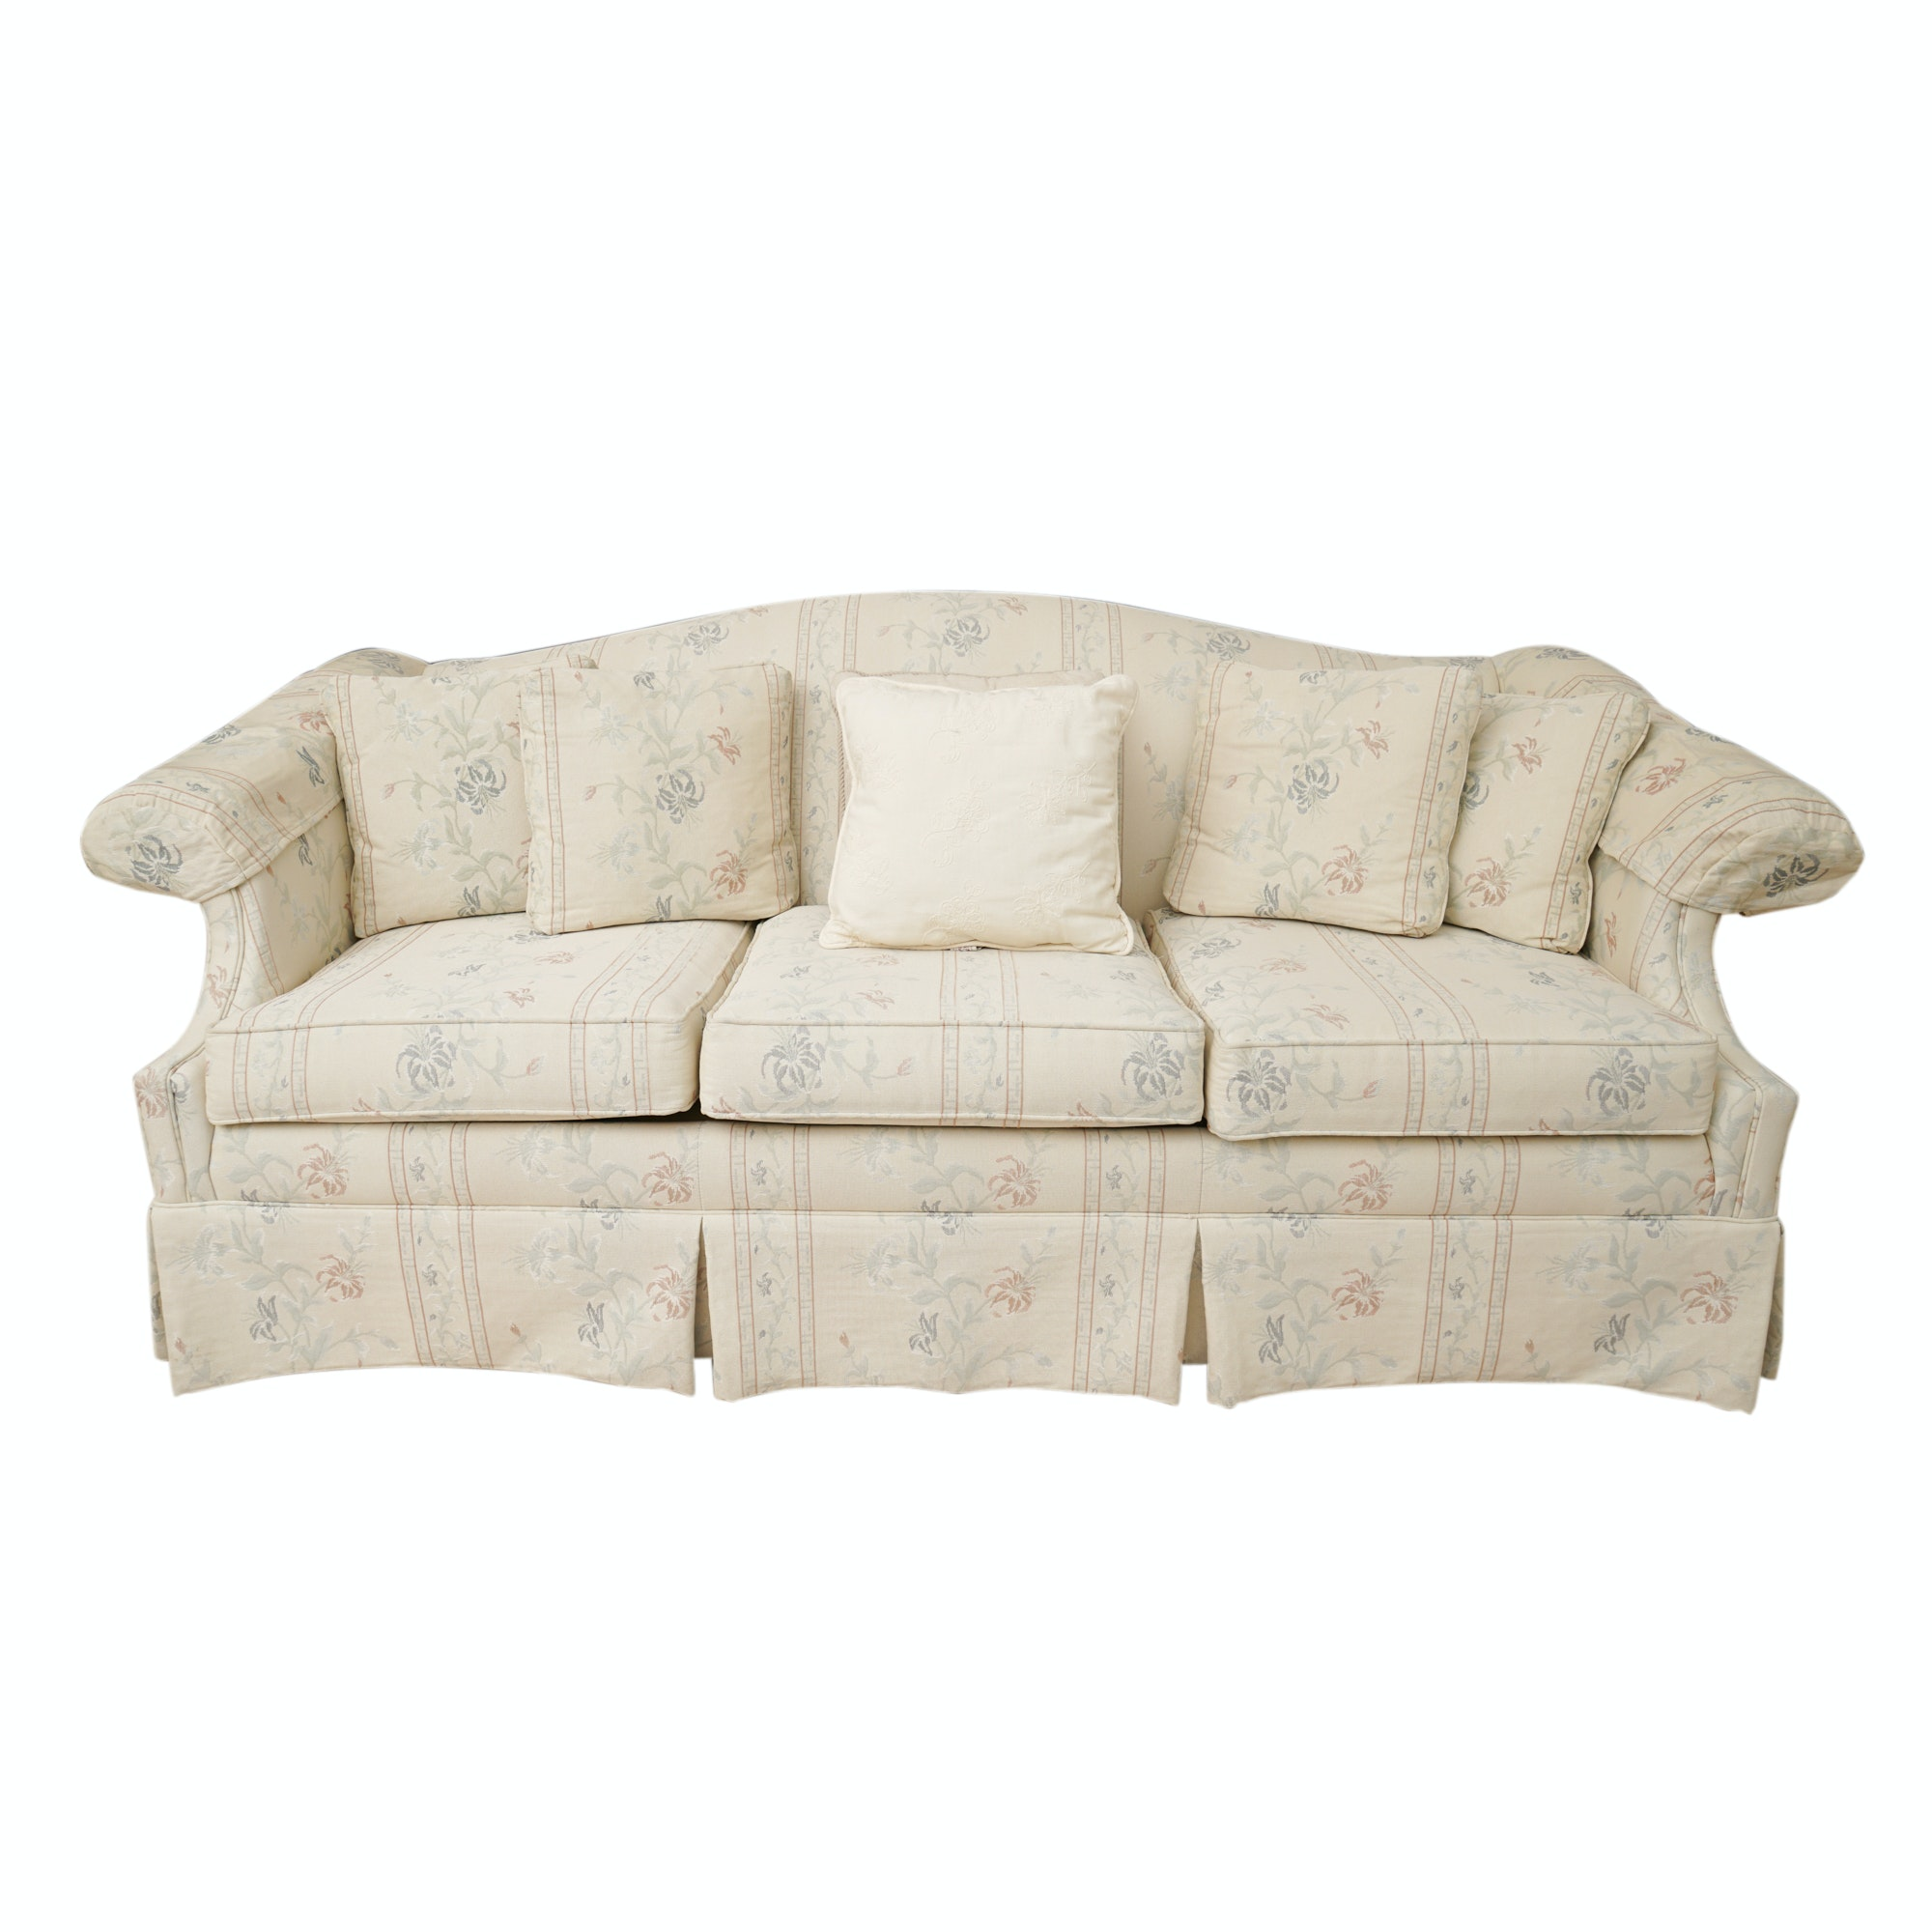 Floral Upholstered Sofa By Conover ...